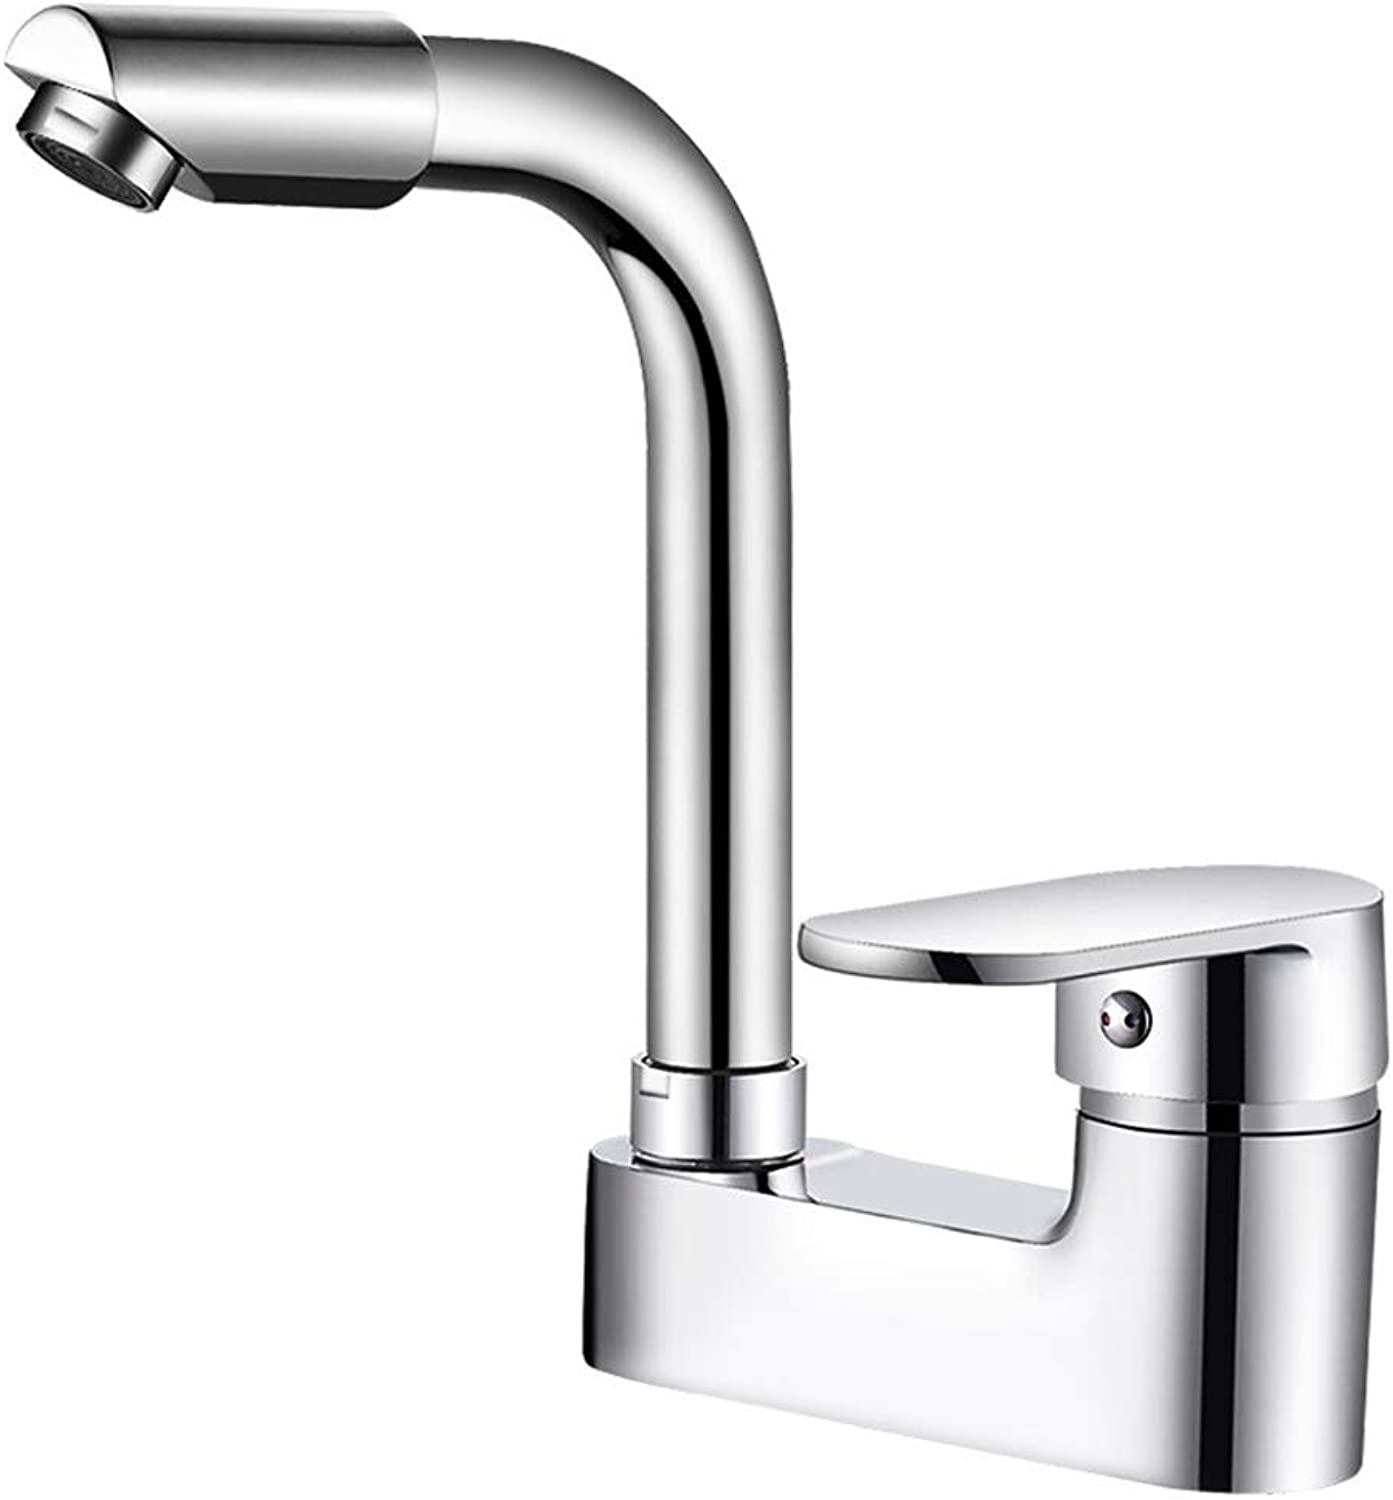 WOOMD Single Handle Double Control Basin Faucet Lead-free Basin Faucet Bathroom Sink Faucet Copper Main Body 360 Degree redating Double Hole Hot and Cold Water Faucet with Water Separator Shower Funct